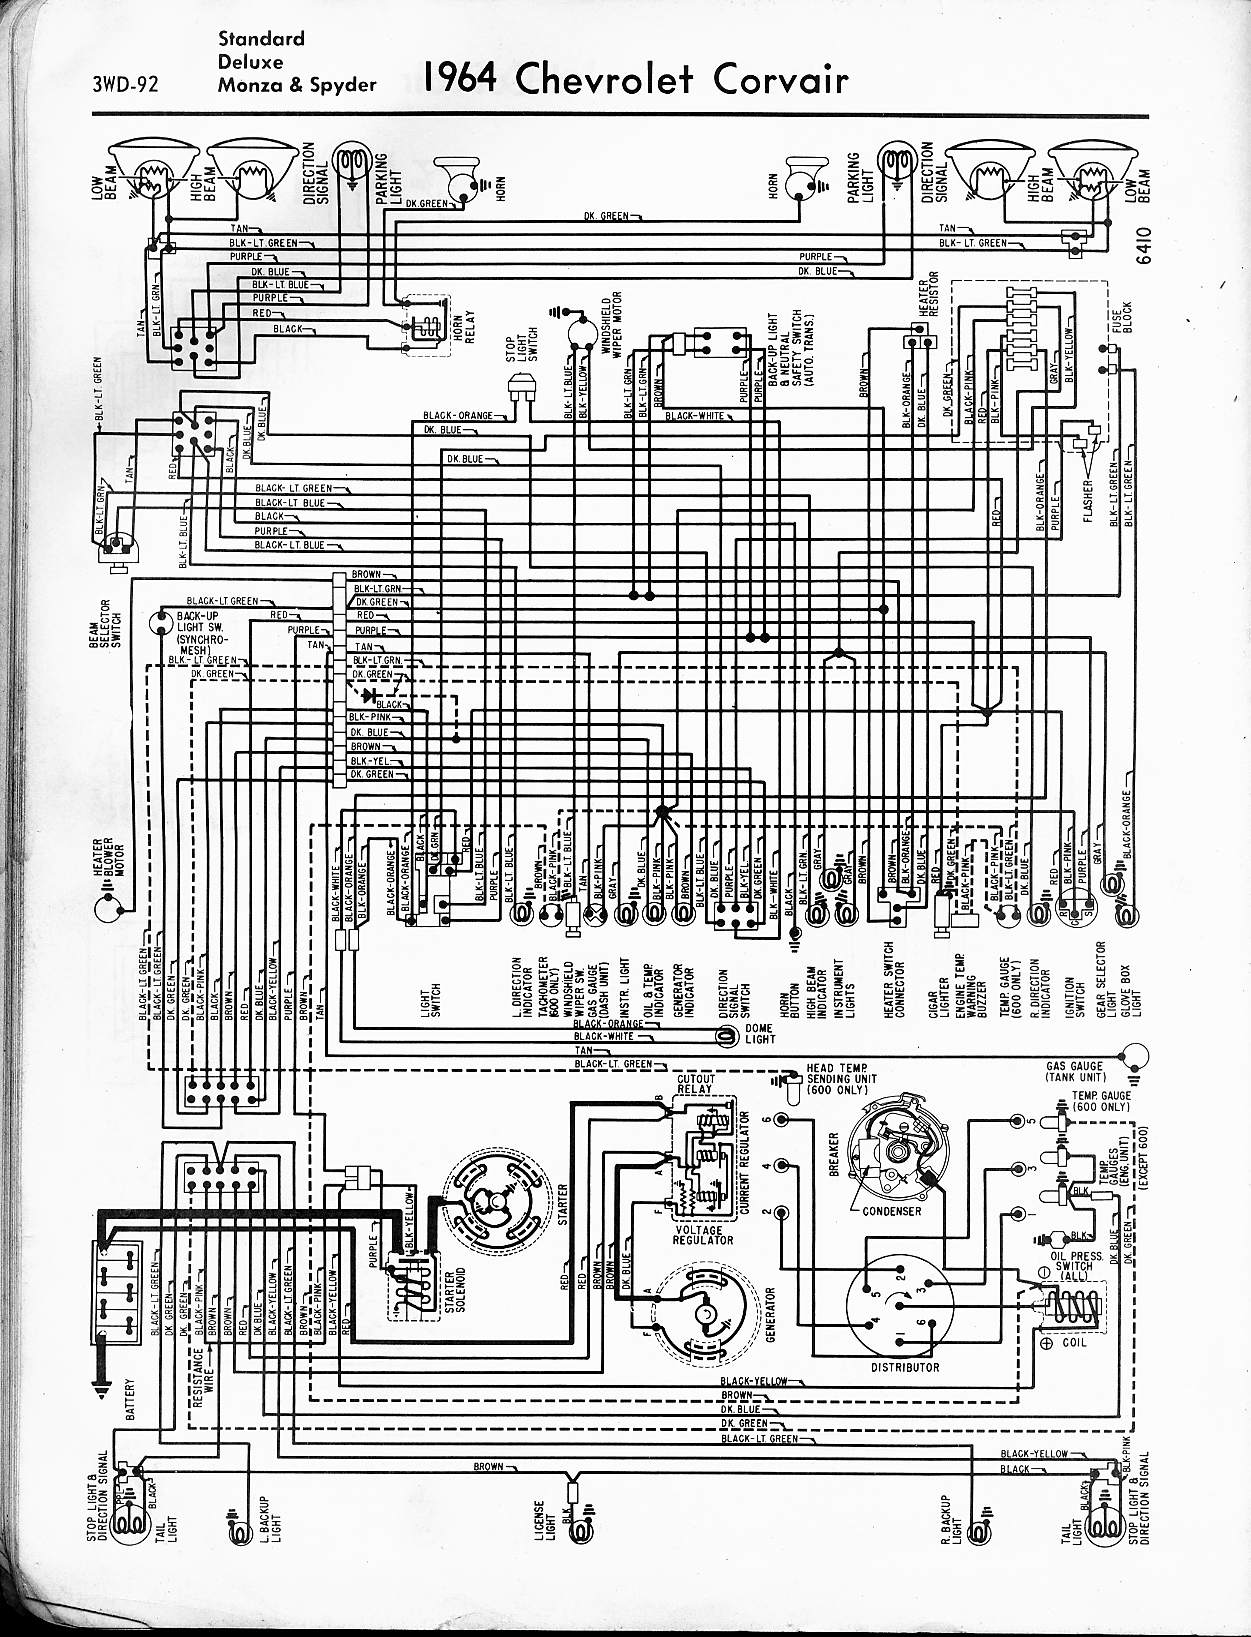 Ez Nova Wiring Diagram Wire Data Schema 1974 Harley Davidson Golf Cart 1963 Chevy Light Direction House Rh Mollusksurfshopnyc Com Go Electric 2009